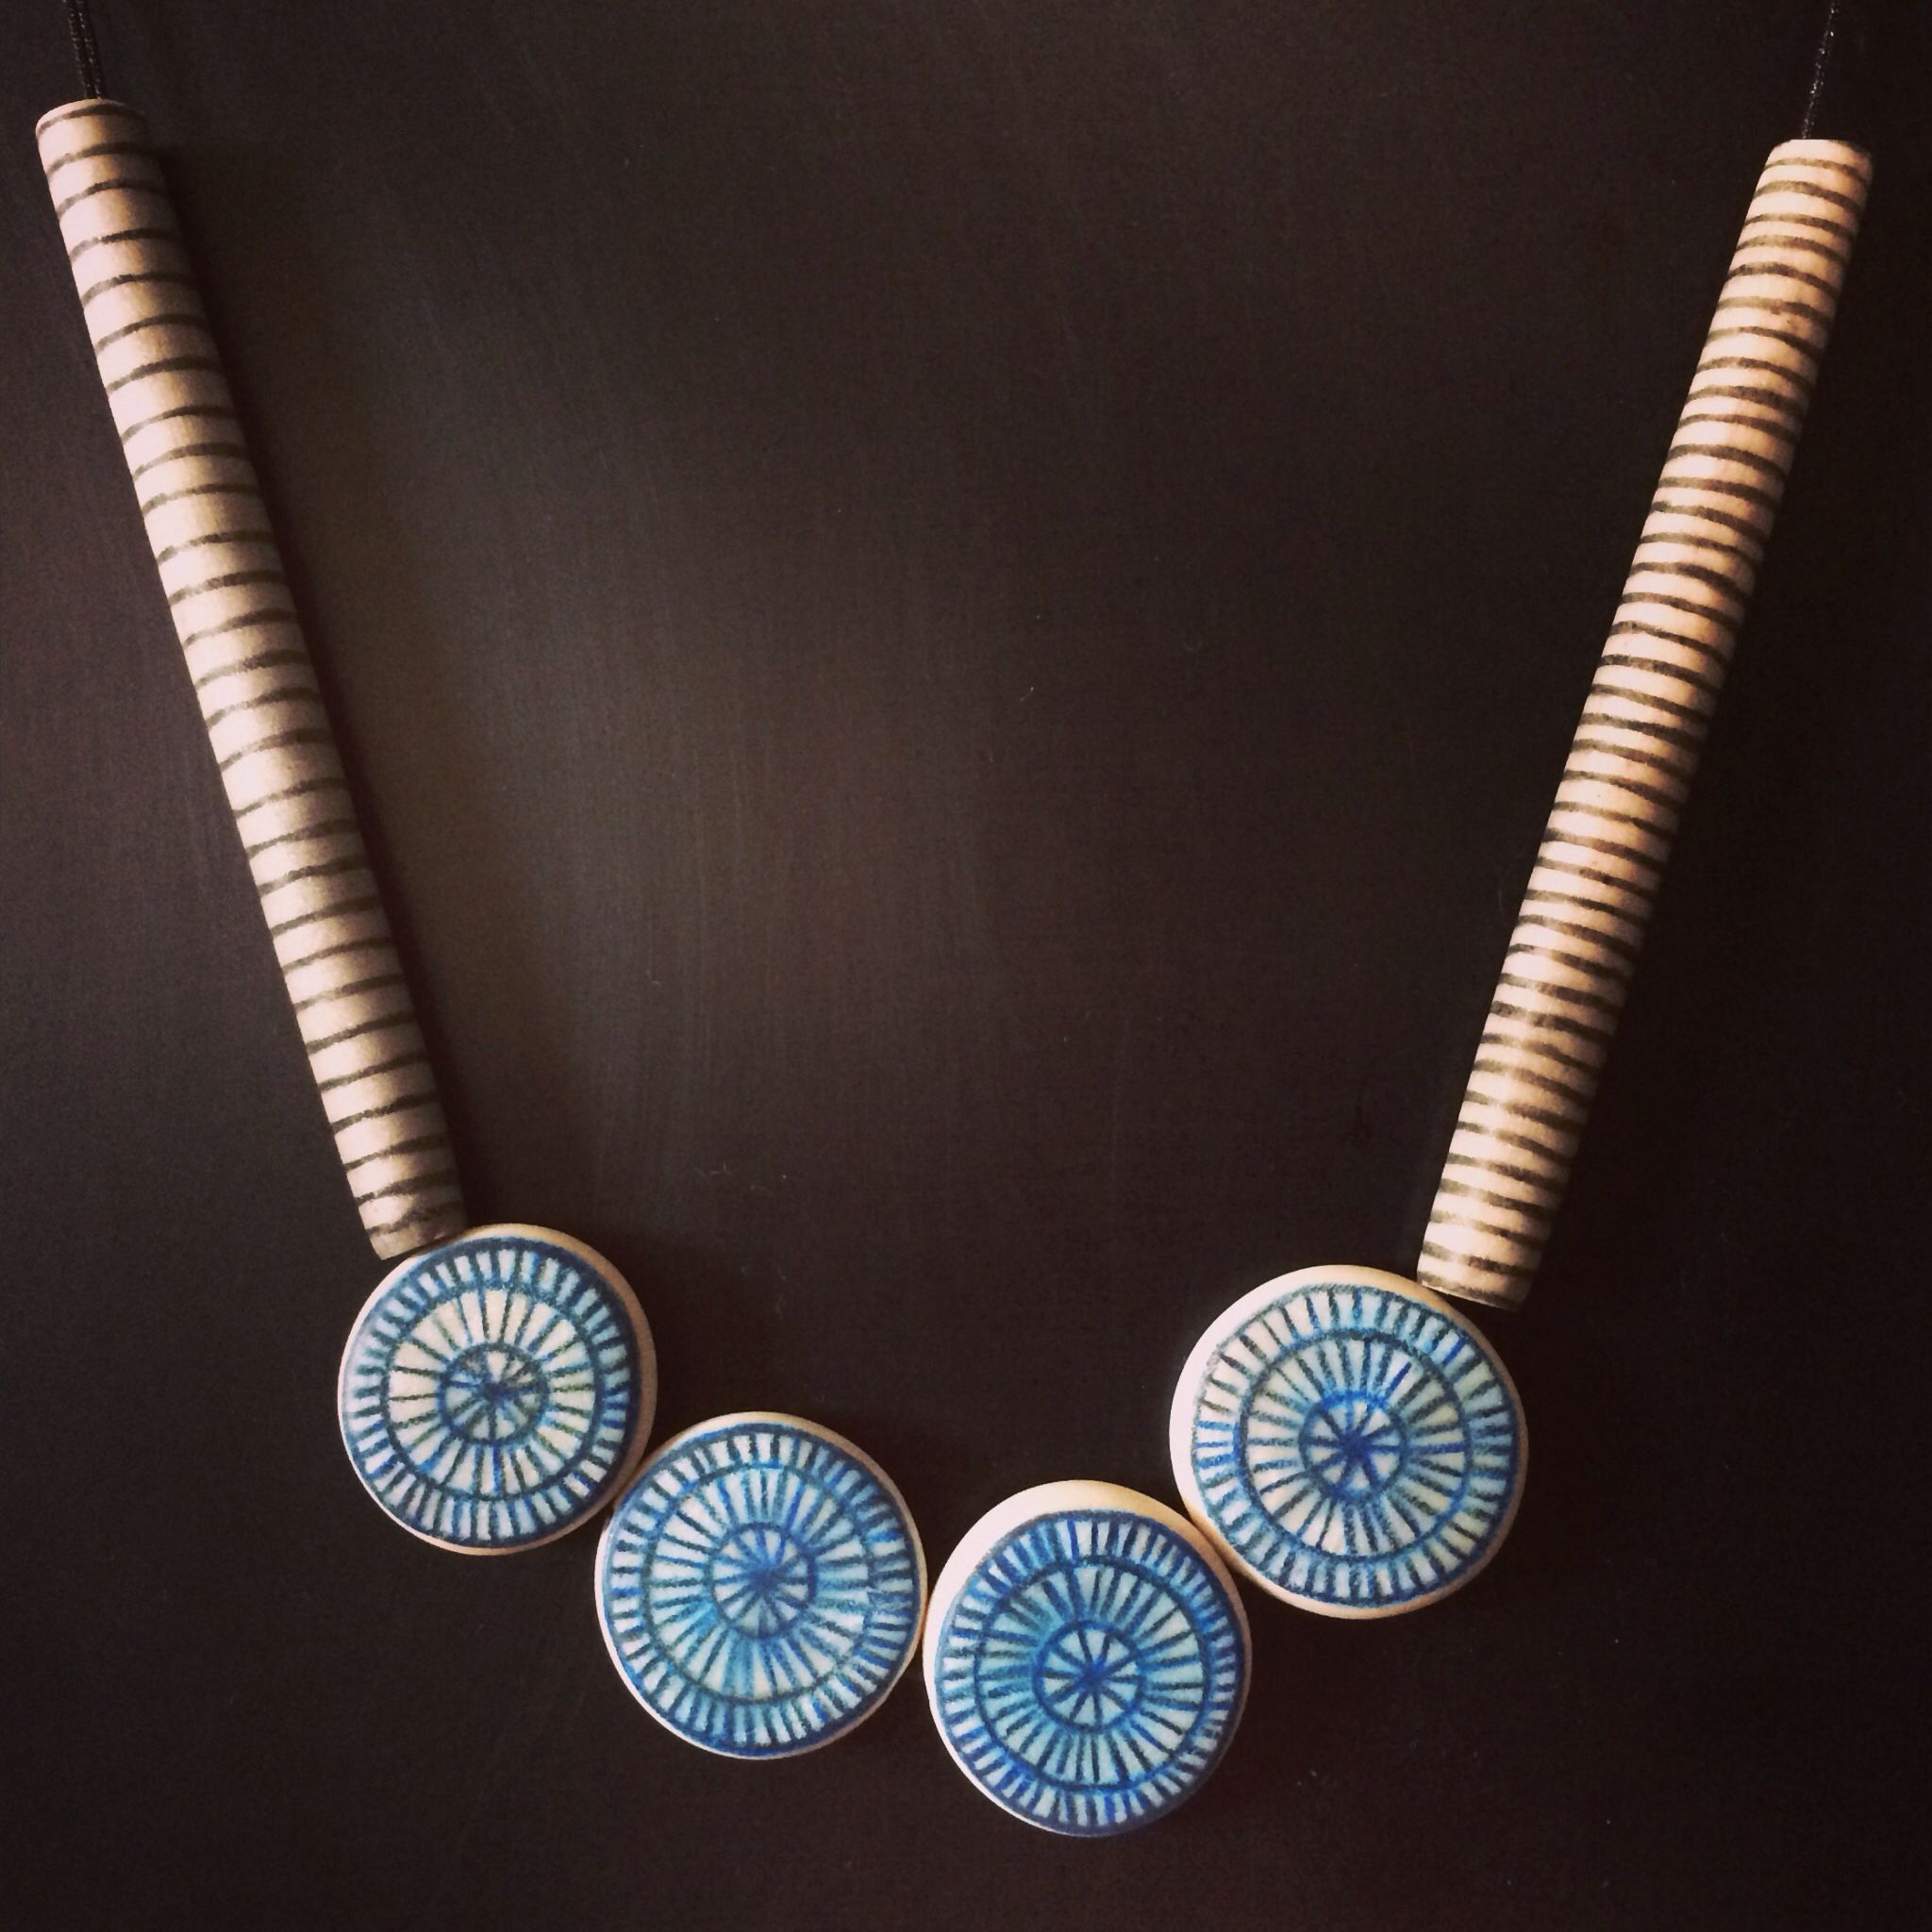 Hand Sculpted And Painted Polymer Clay Necklace